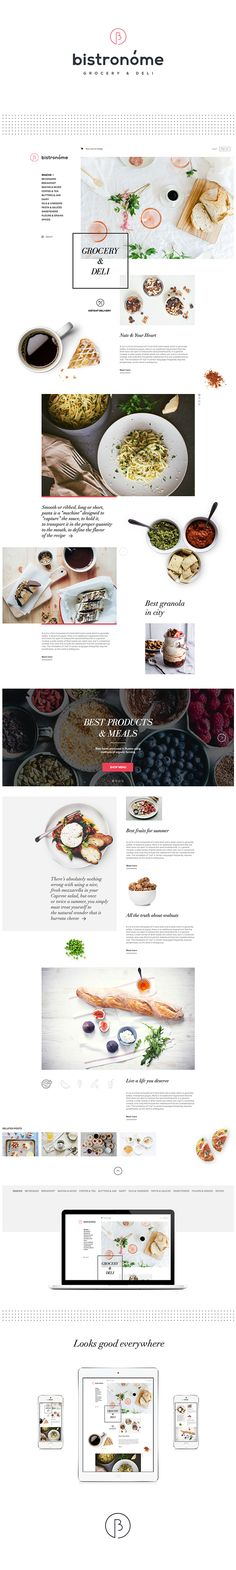 Bistronome Deli and Grocery Delivery Website by Serge Vasil